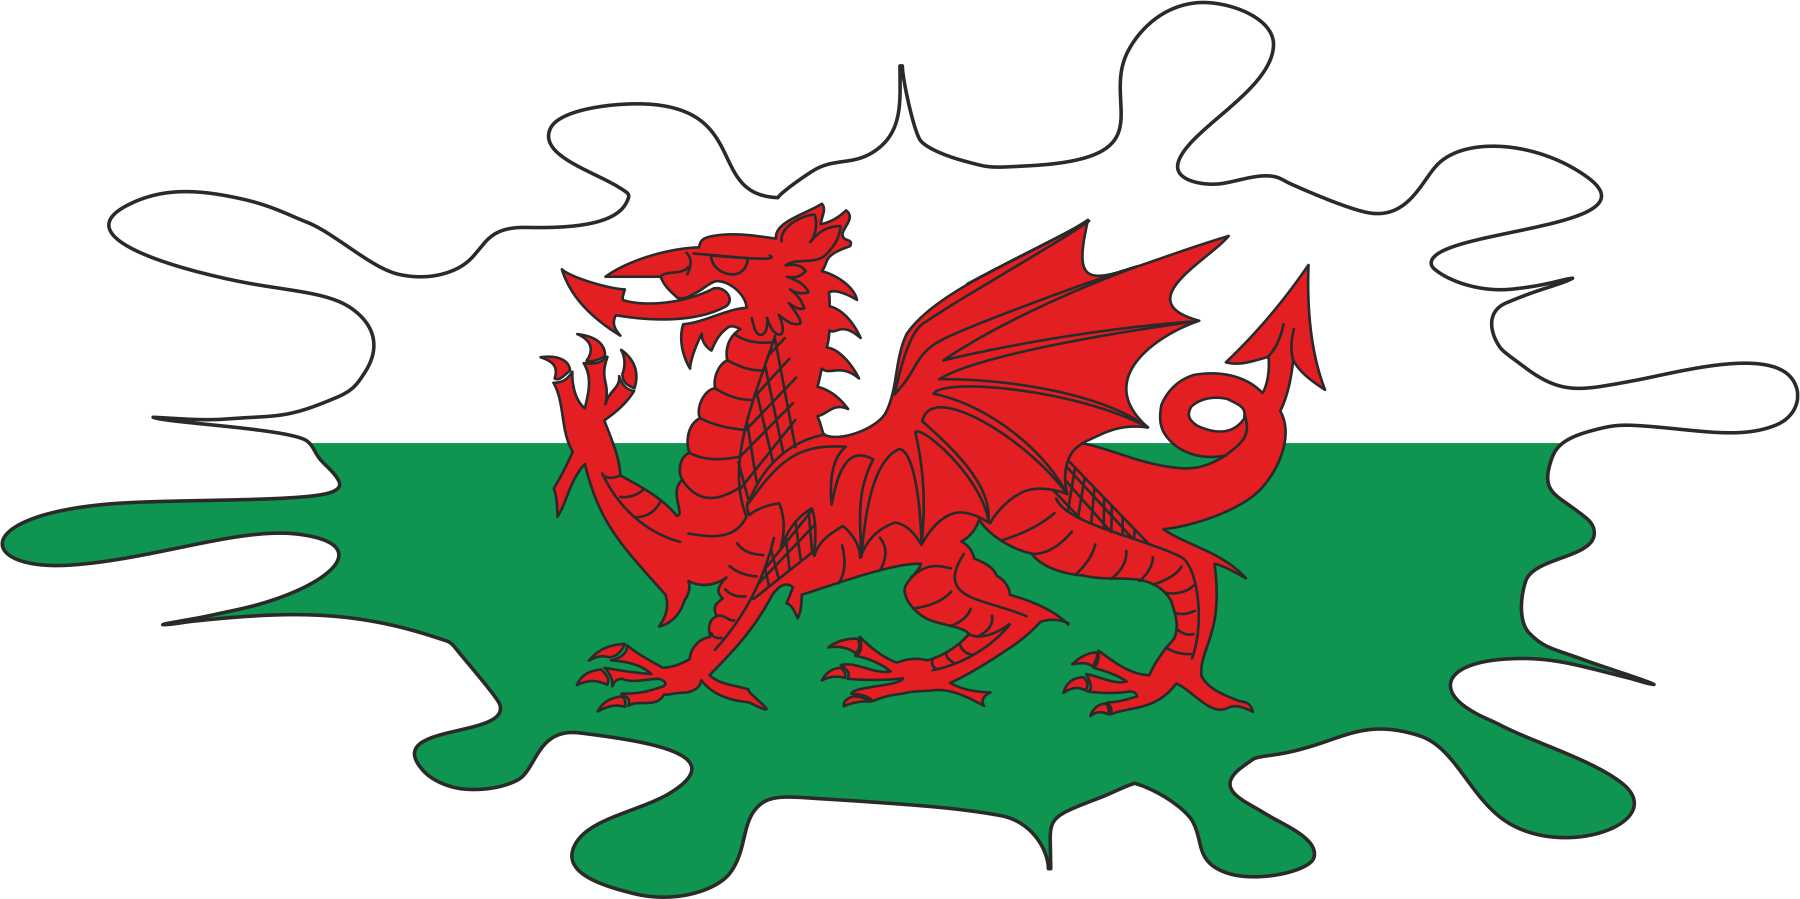 Clipart Welsh Cake : Welsh Flag Picture - ClipArt Best